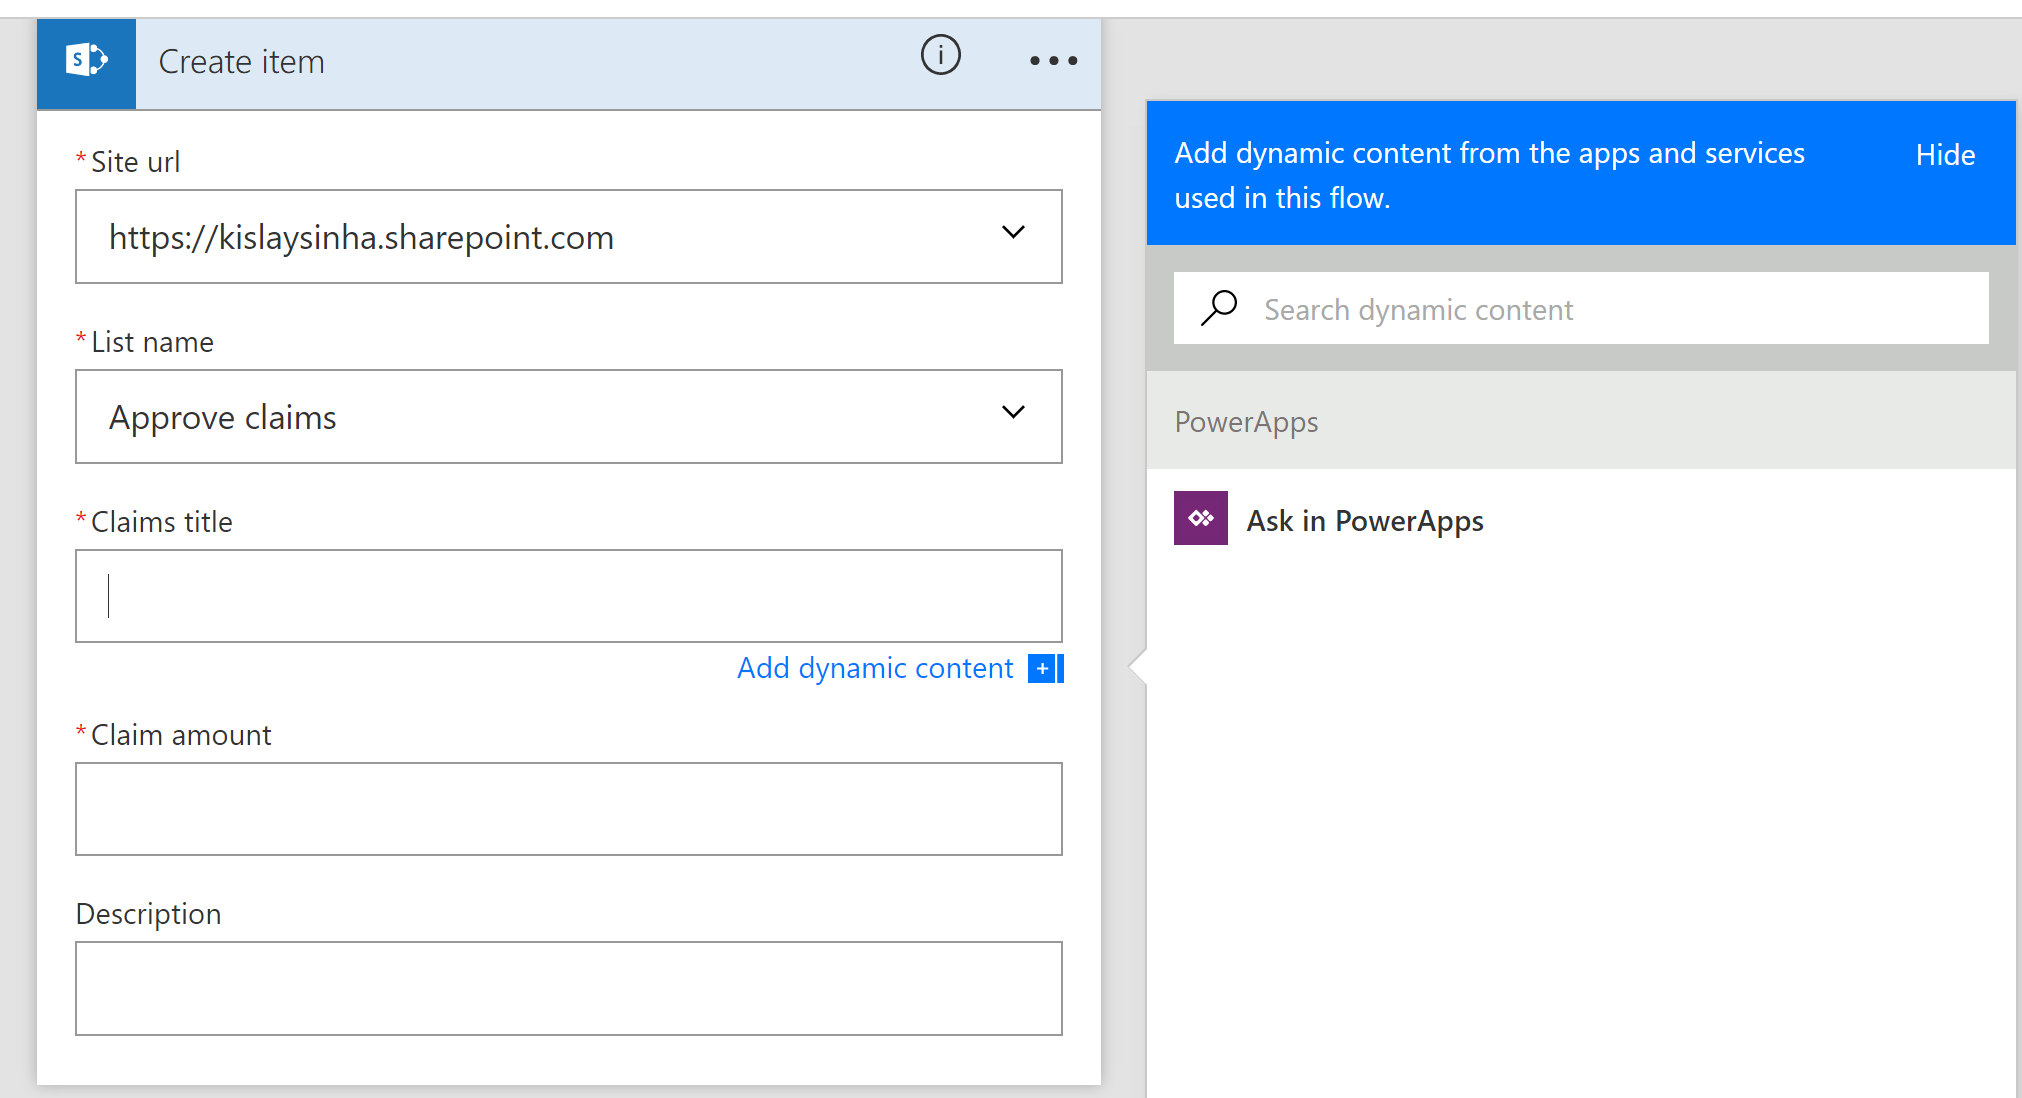 askpowerapps